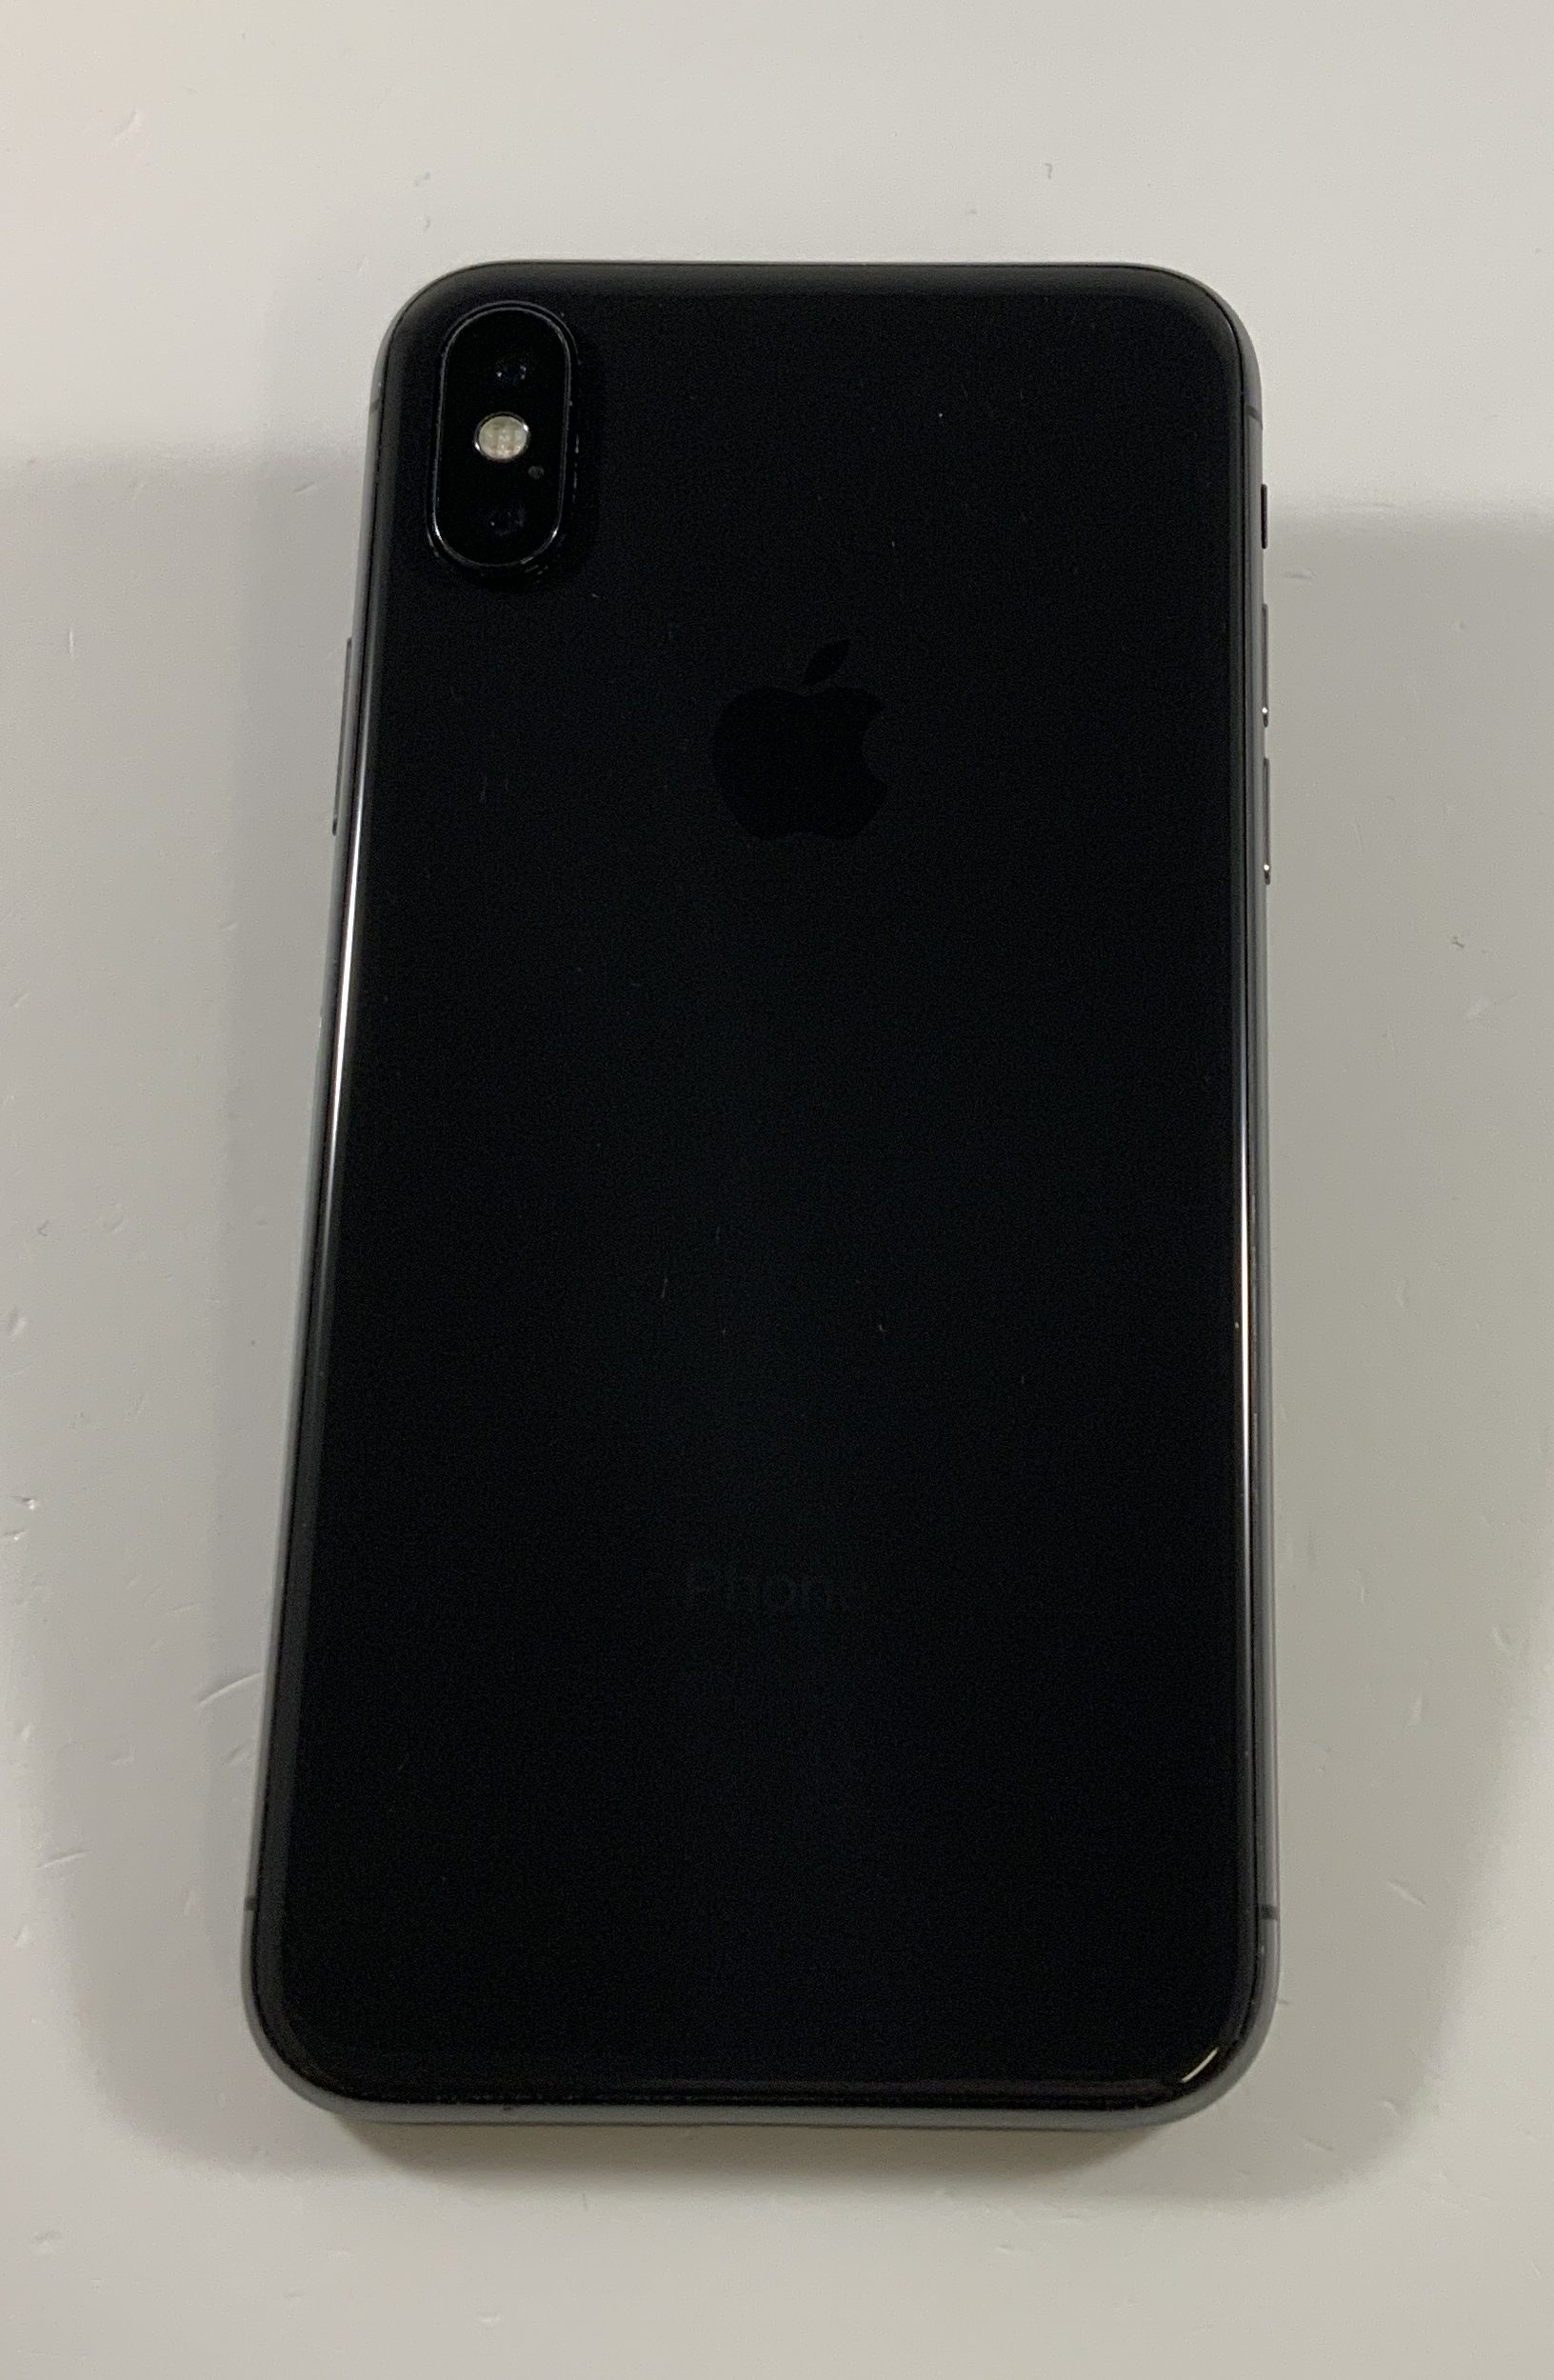 iPhone X 64GB, 64GB, Space Gray, immagine 2